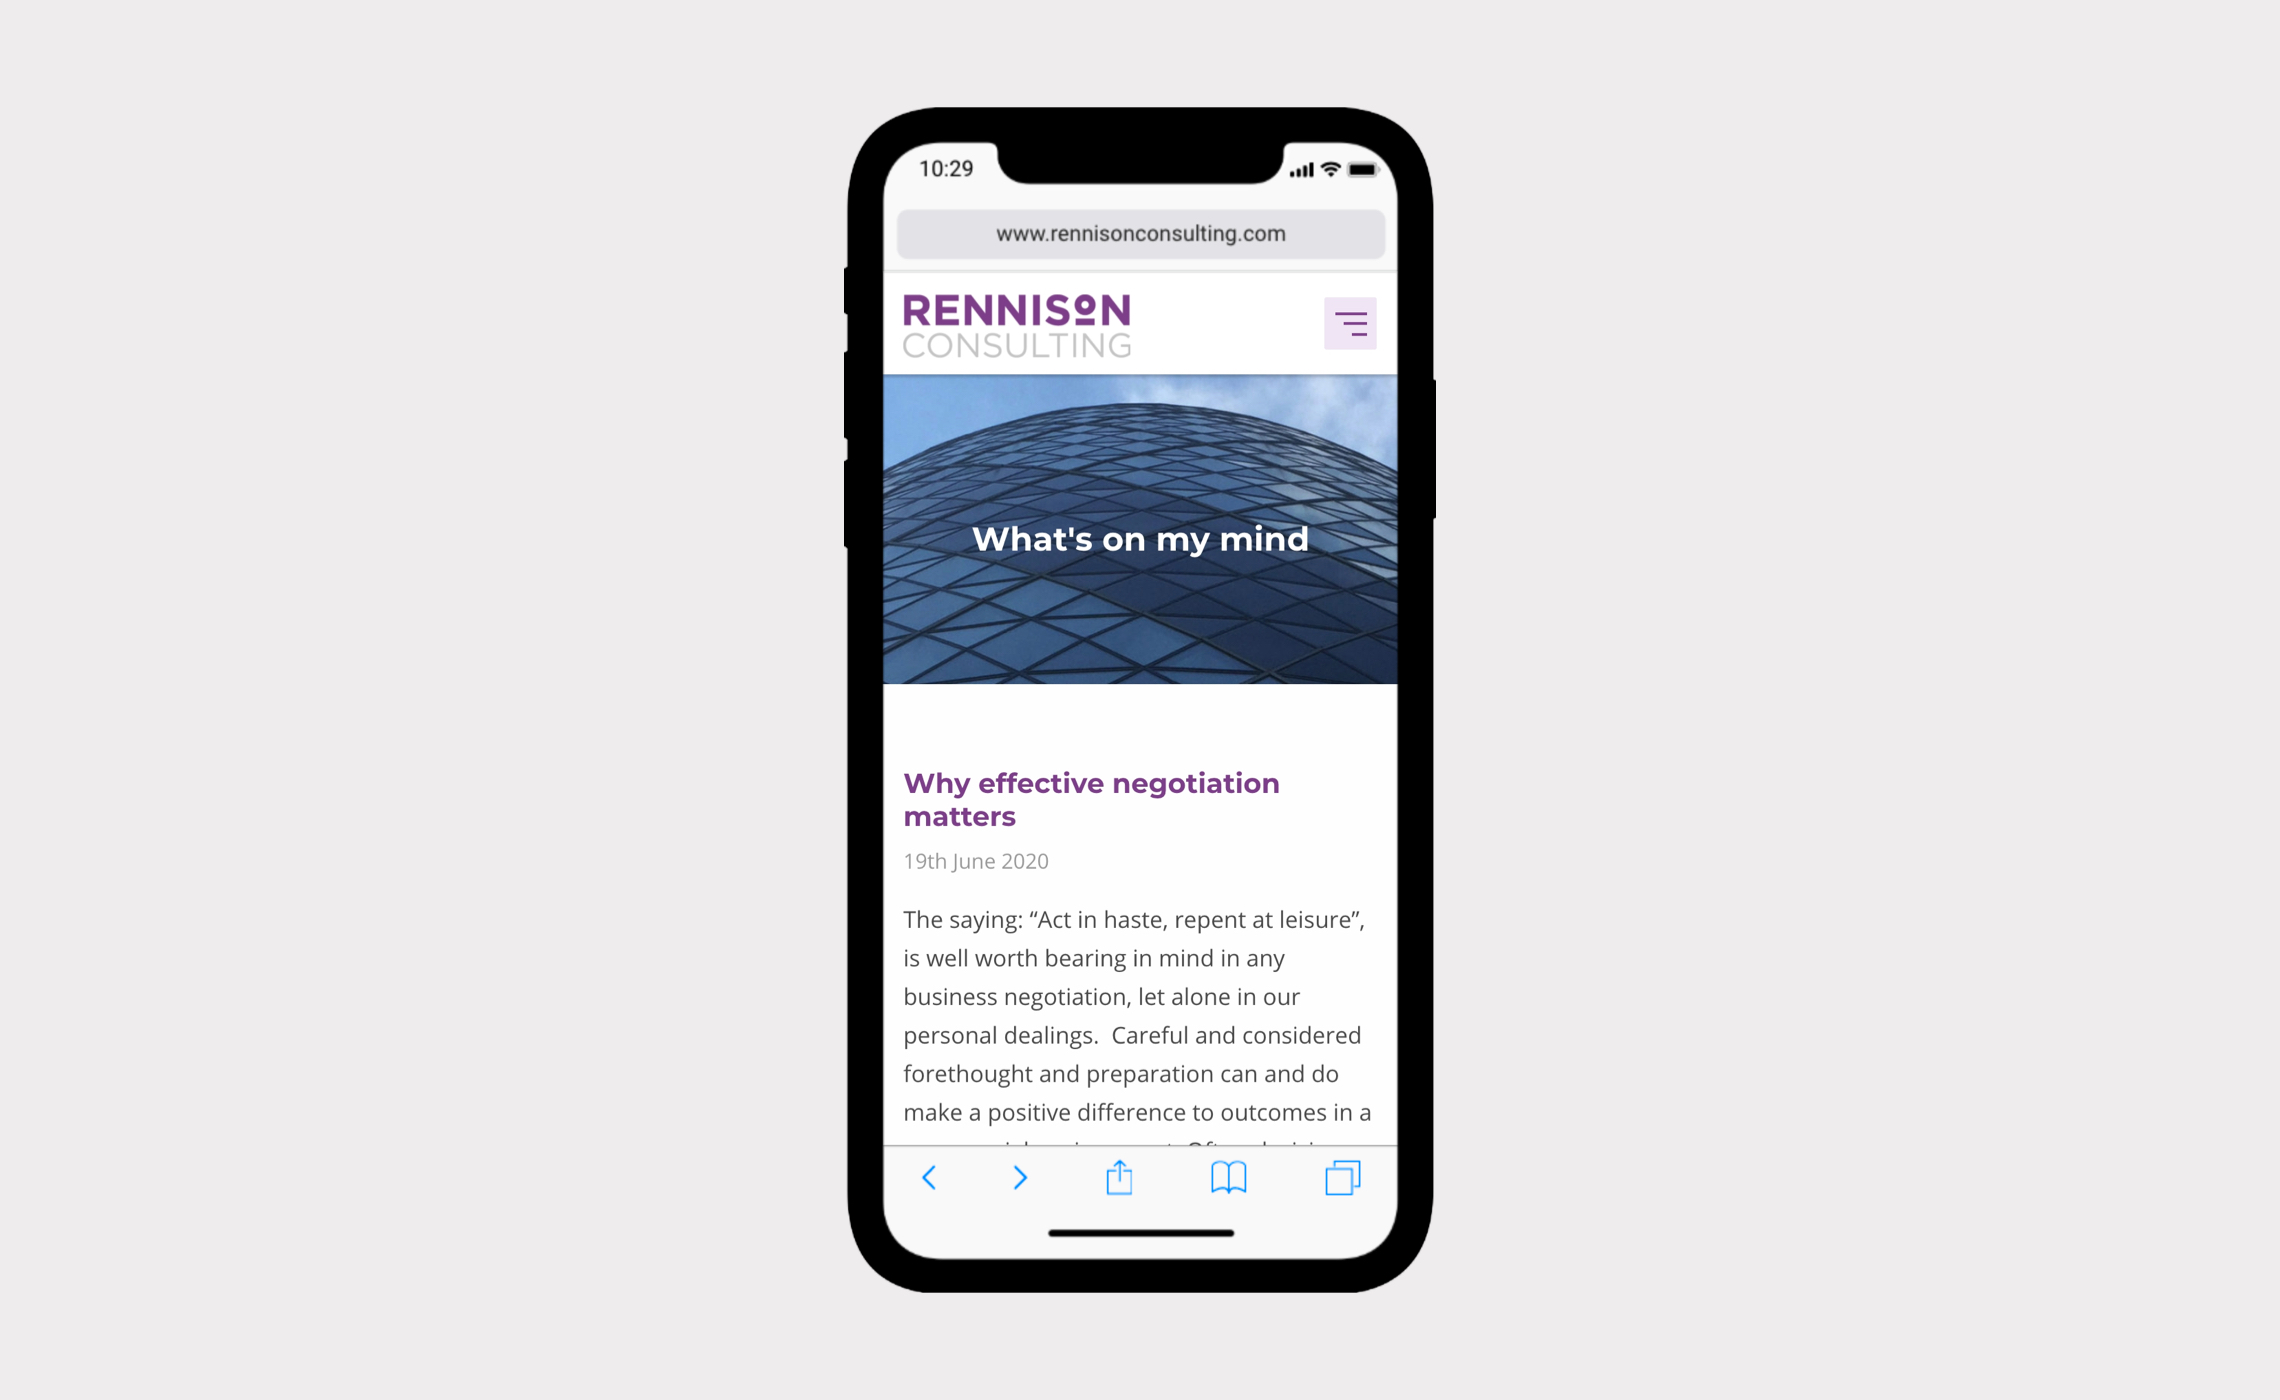 Rennison Consulting – website on mobile